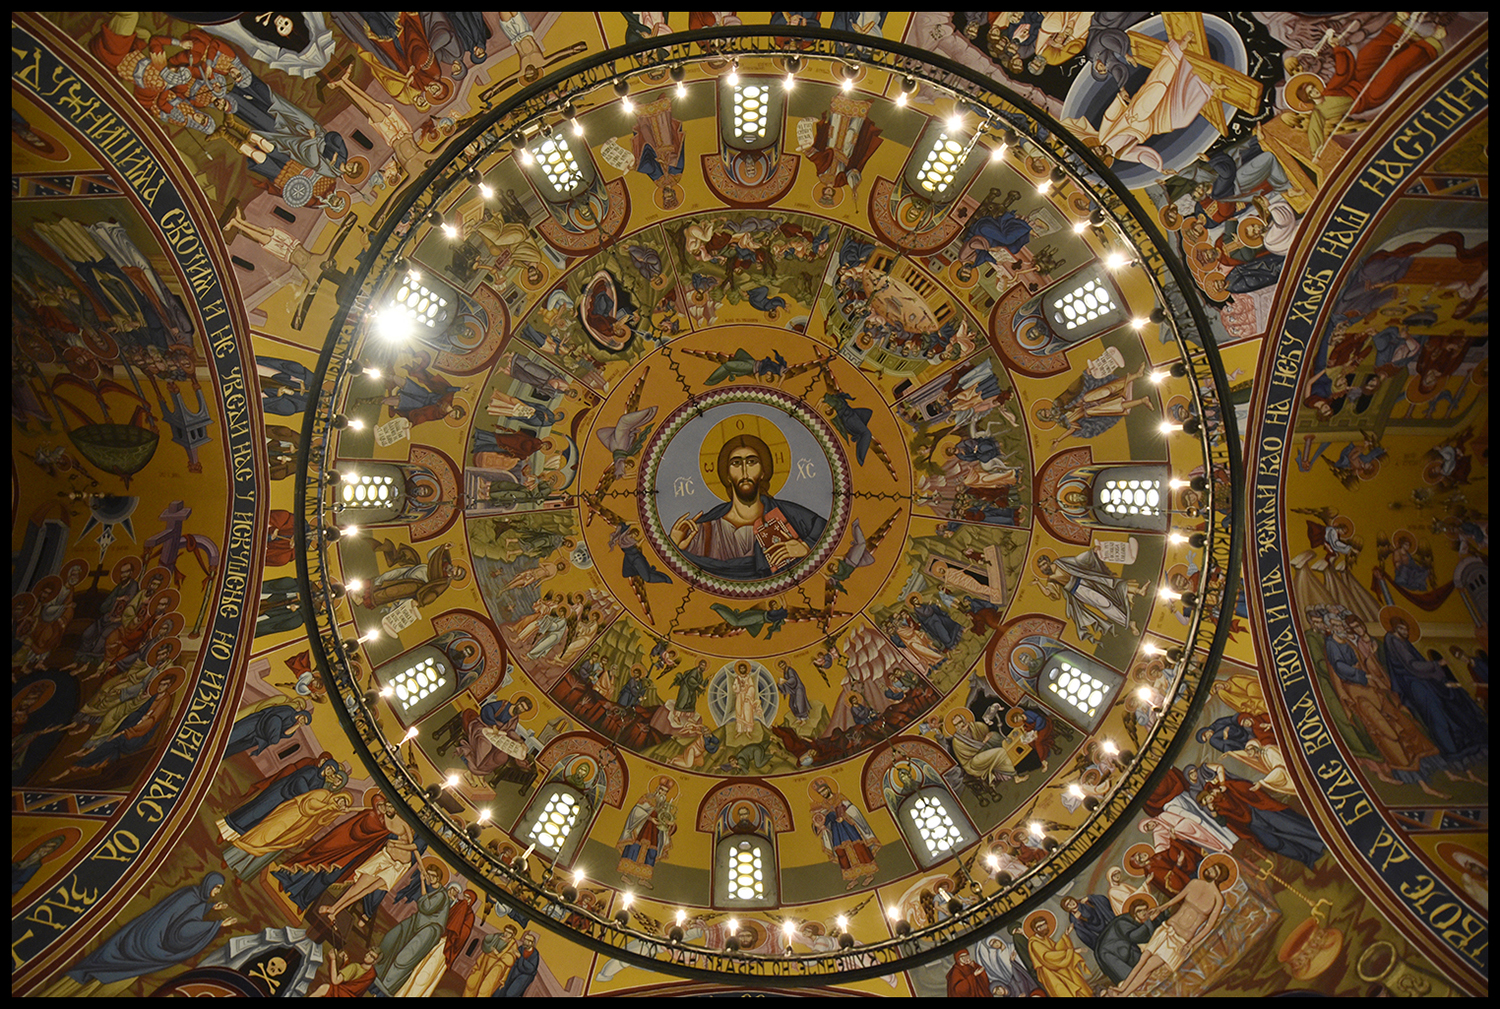 View of the beautiful painted ceiling of the Temple/Church of the Holy Transfiguration in Sarajevo, Bosnia and Herzegovina. This Serbian Orthodox church was built in 1940 by Aleksandar Deroko, the project was initially made for Split in Croatia, that's why the church looks like a places of worship on the Adriatic coast. Sarajevo, Bosnia and Herzegovina